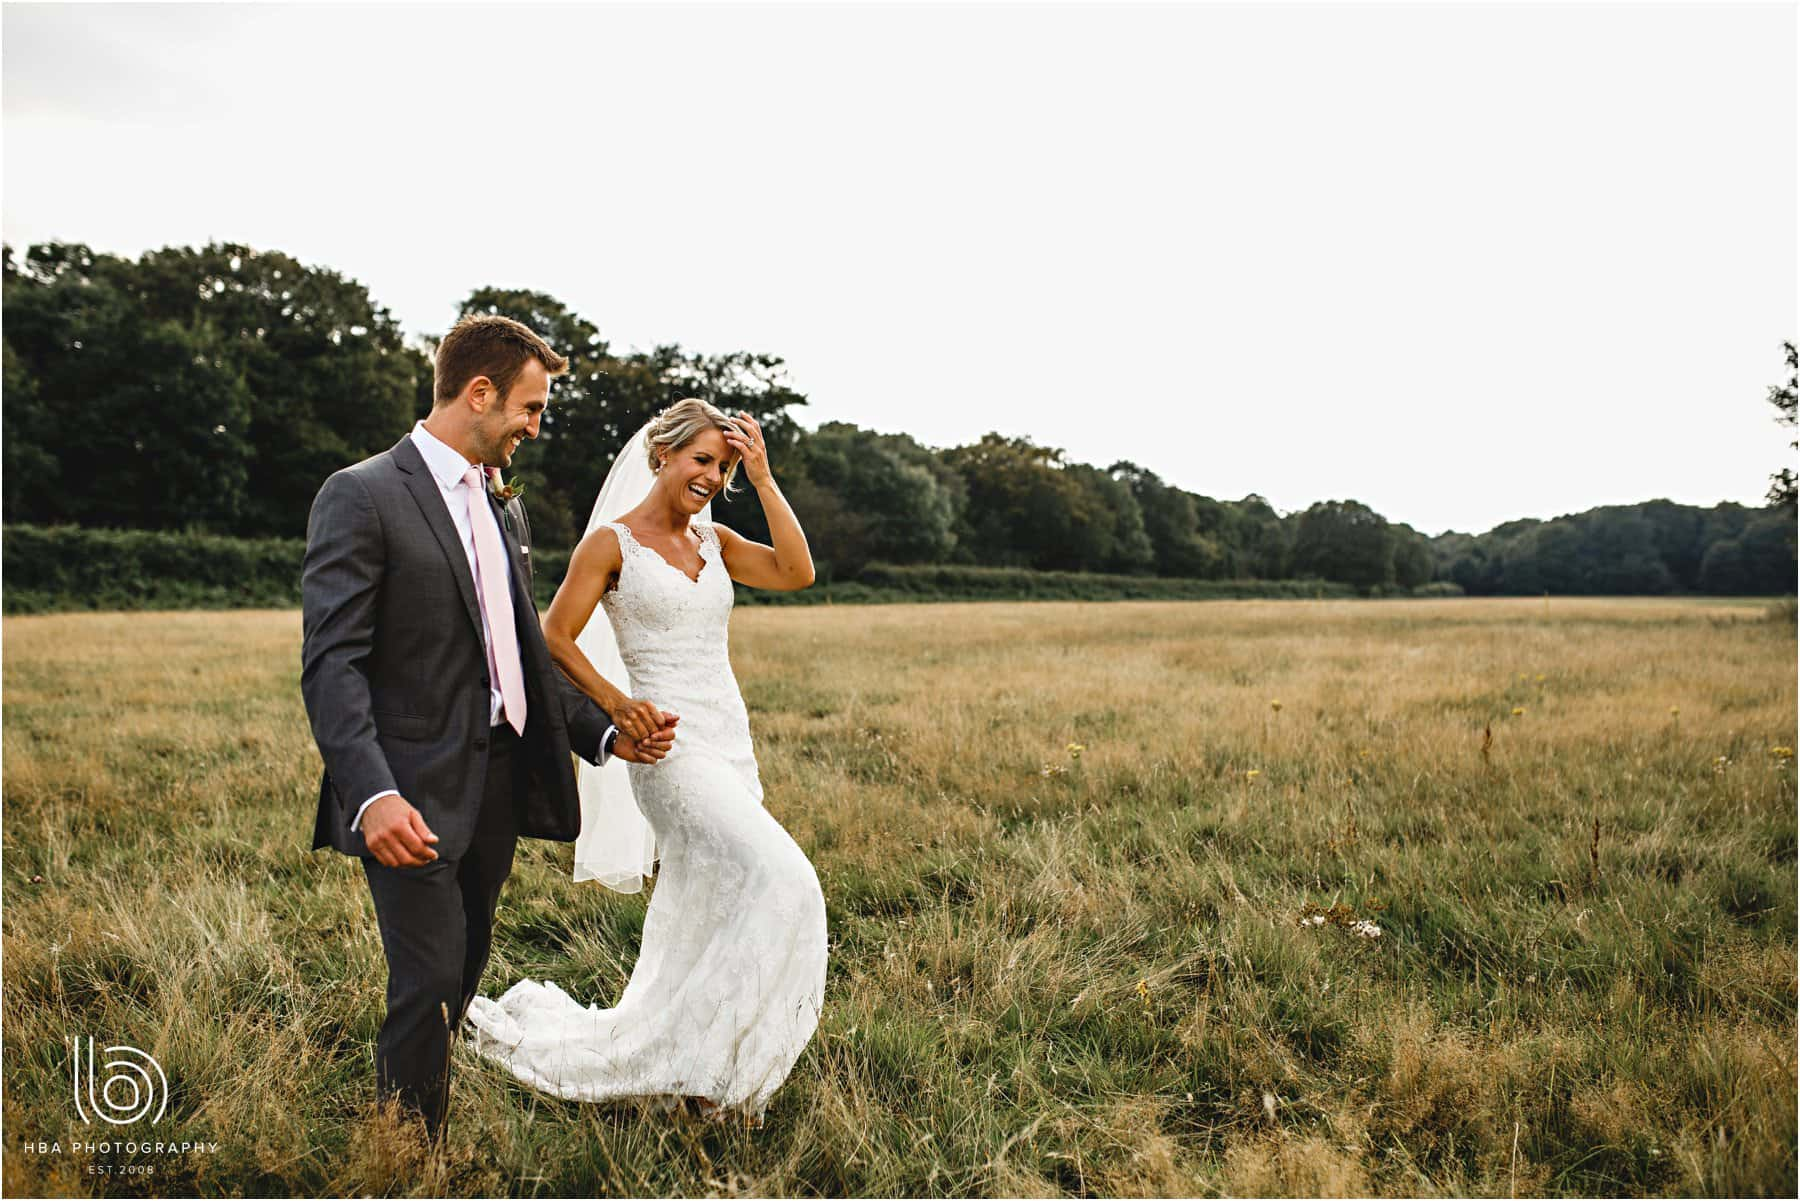 the bride and groom walking in the field